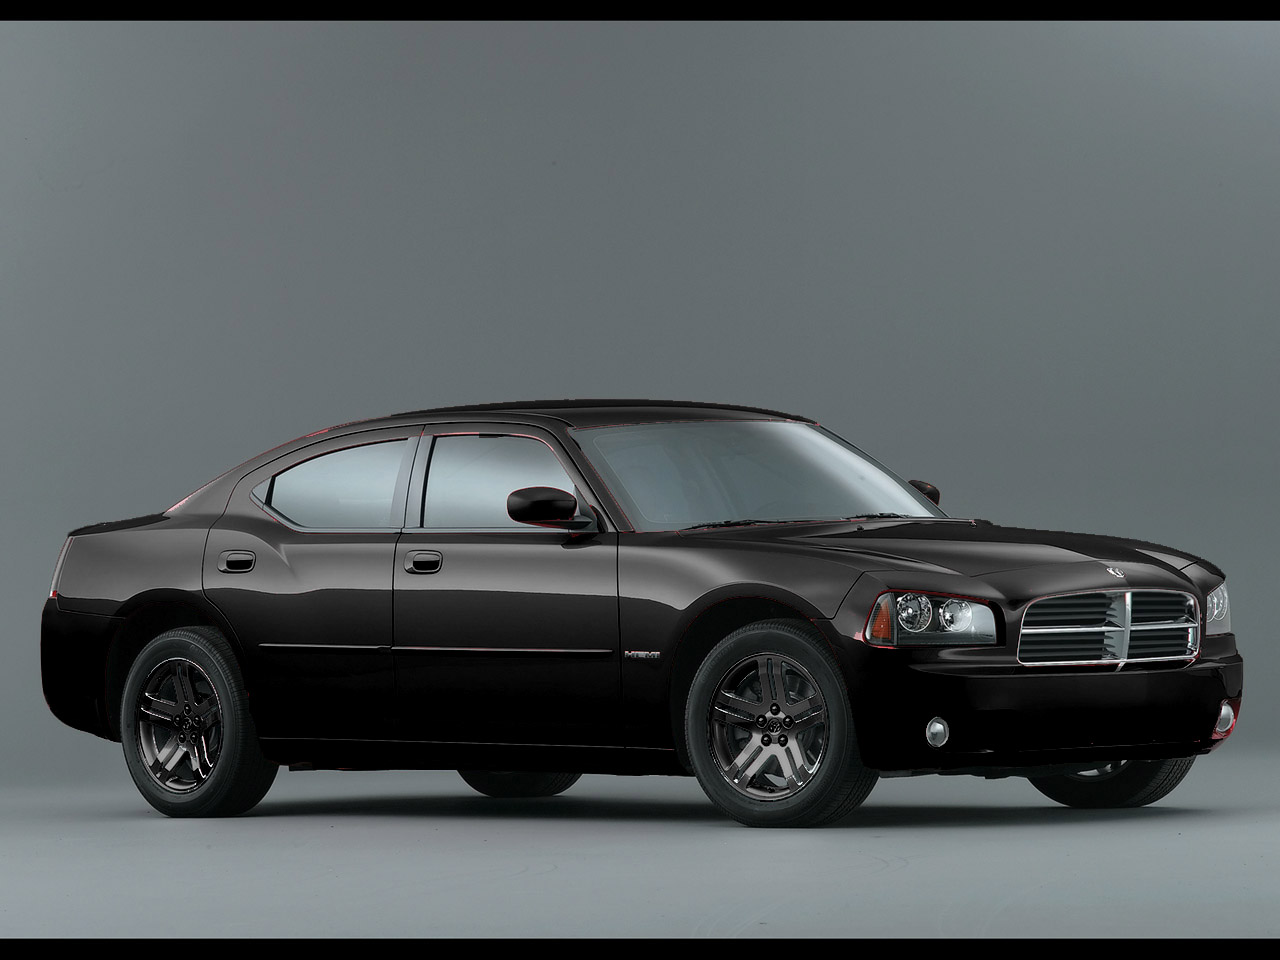 Dodge Charger Srt8 Black